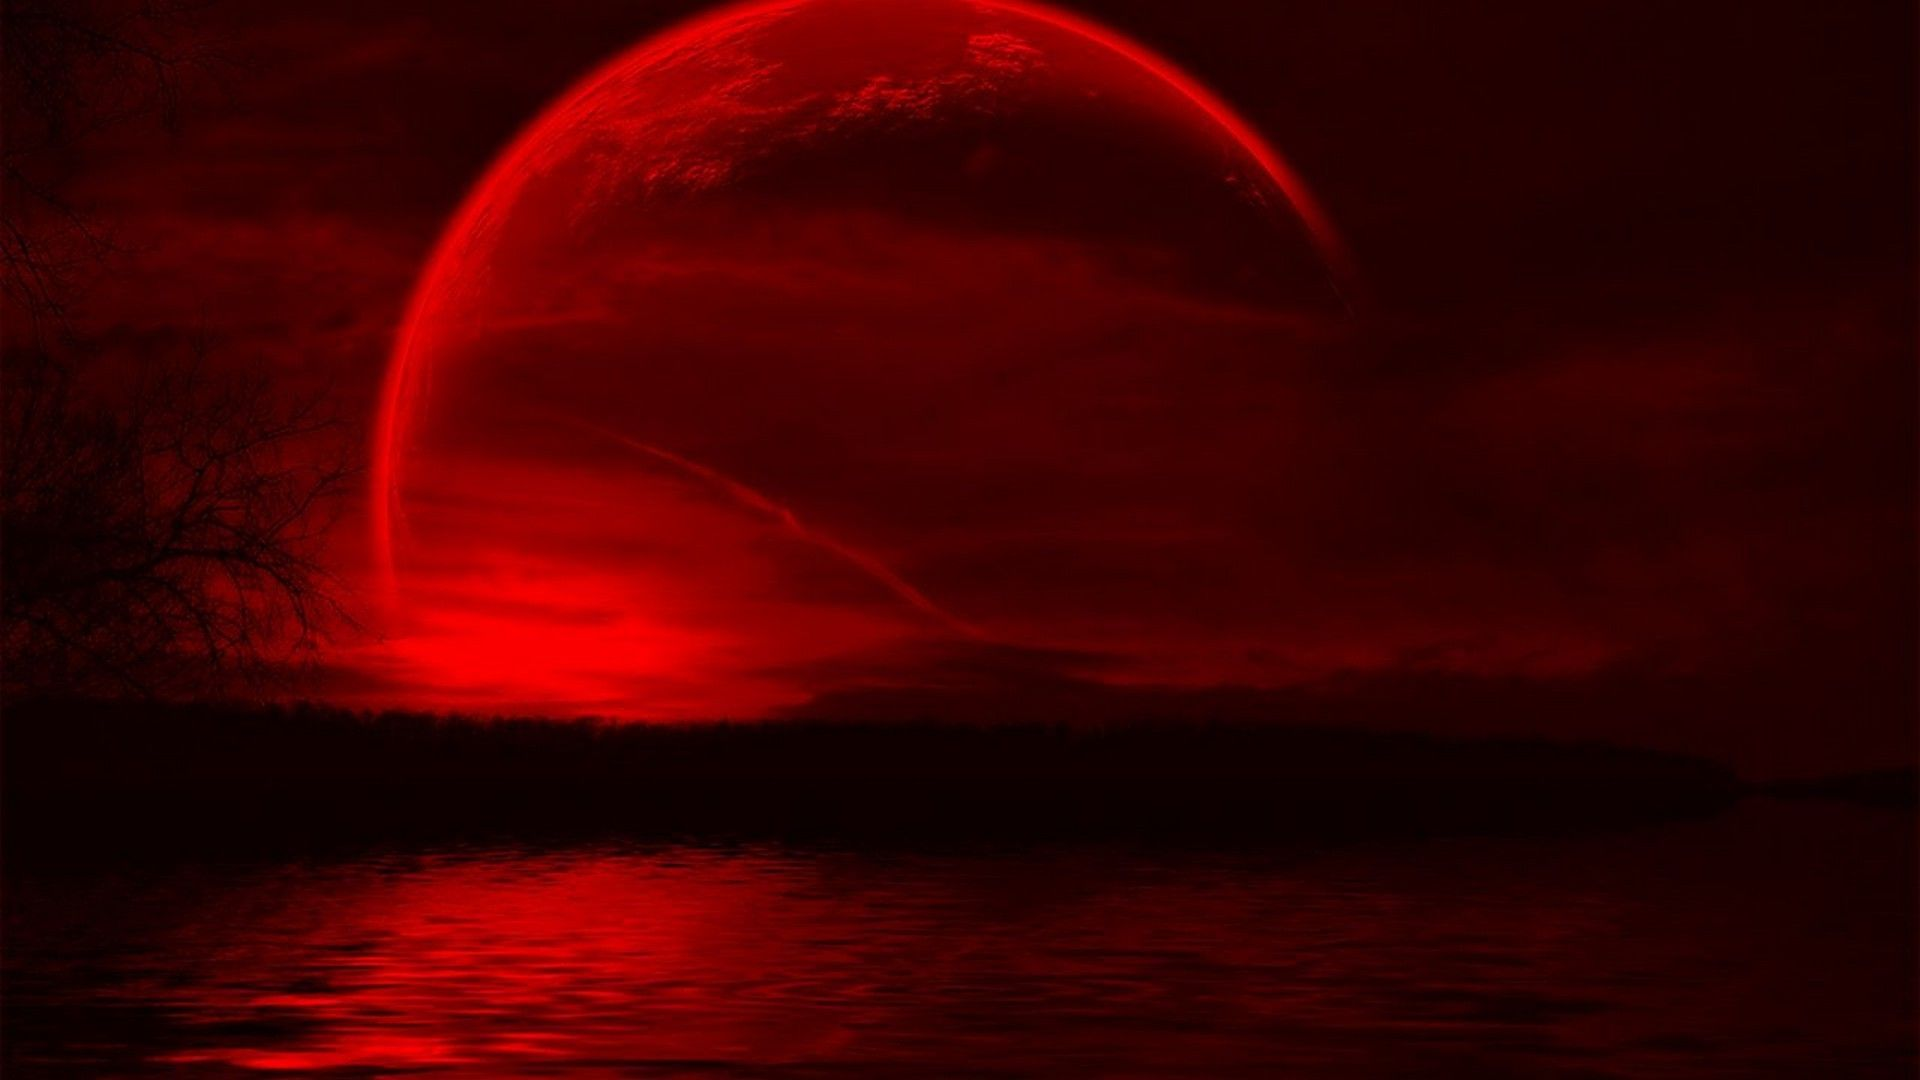 Lunar Eclipse Wallpapers and Backgrounds Image